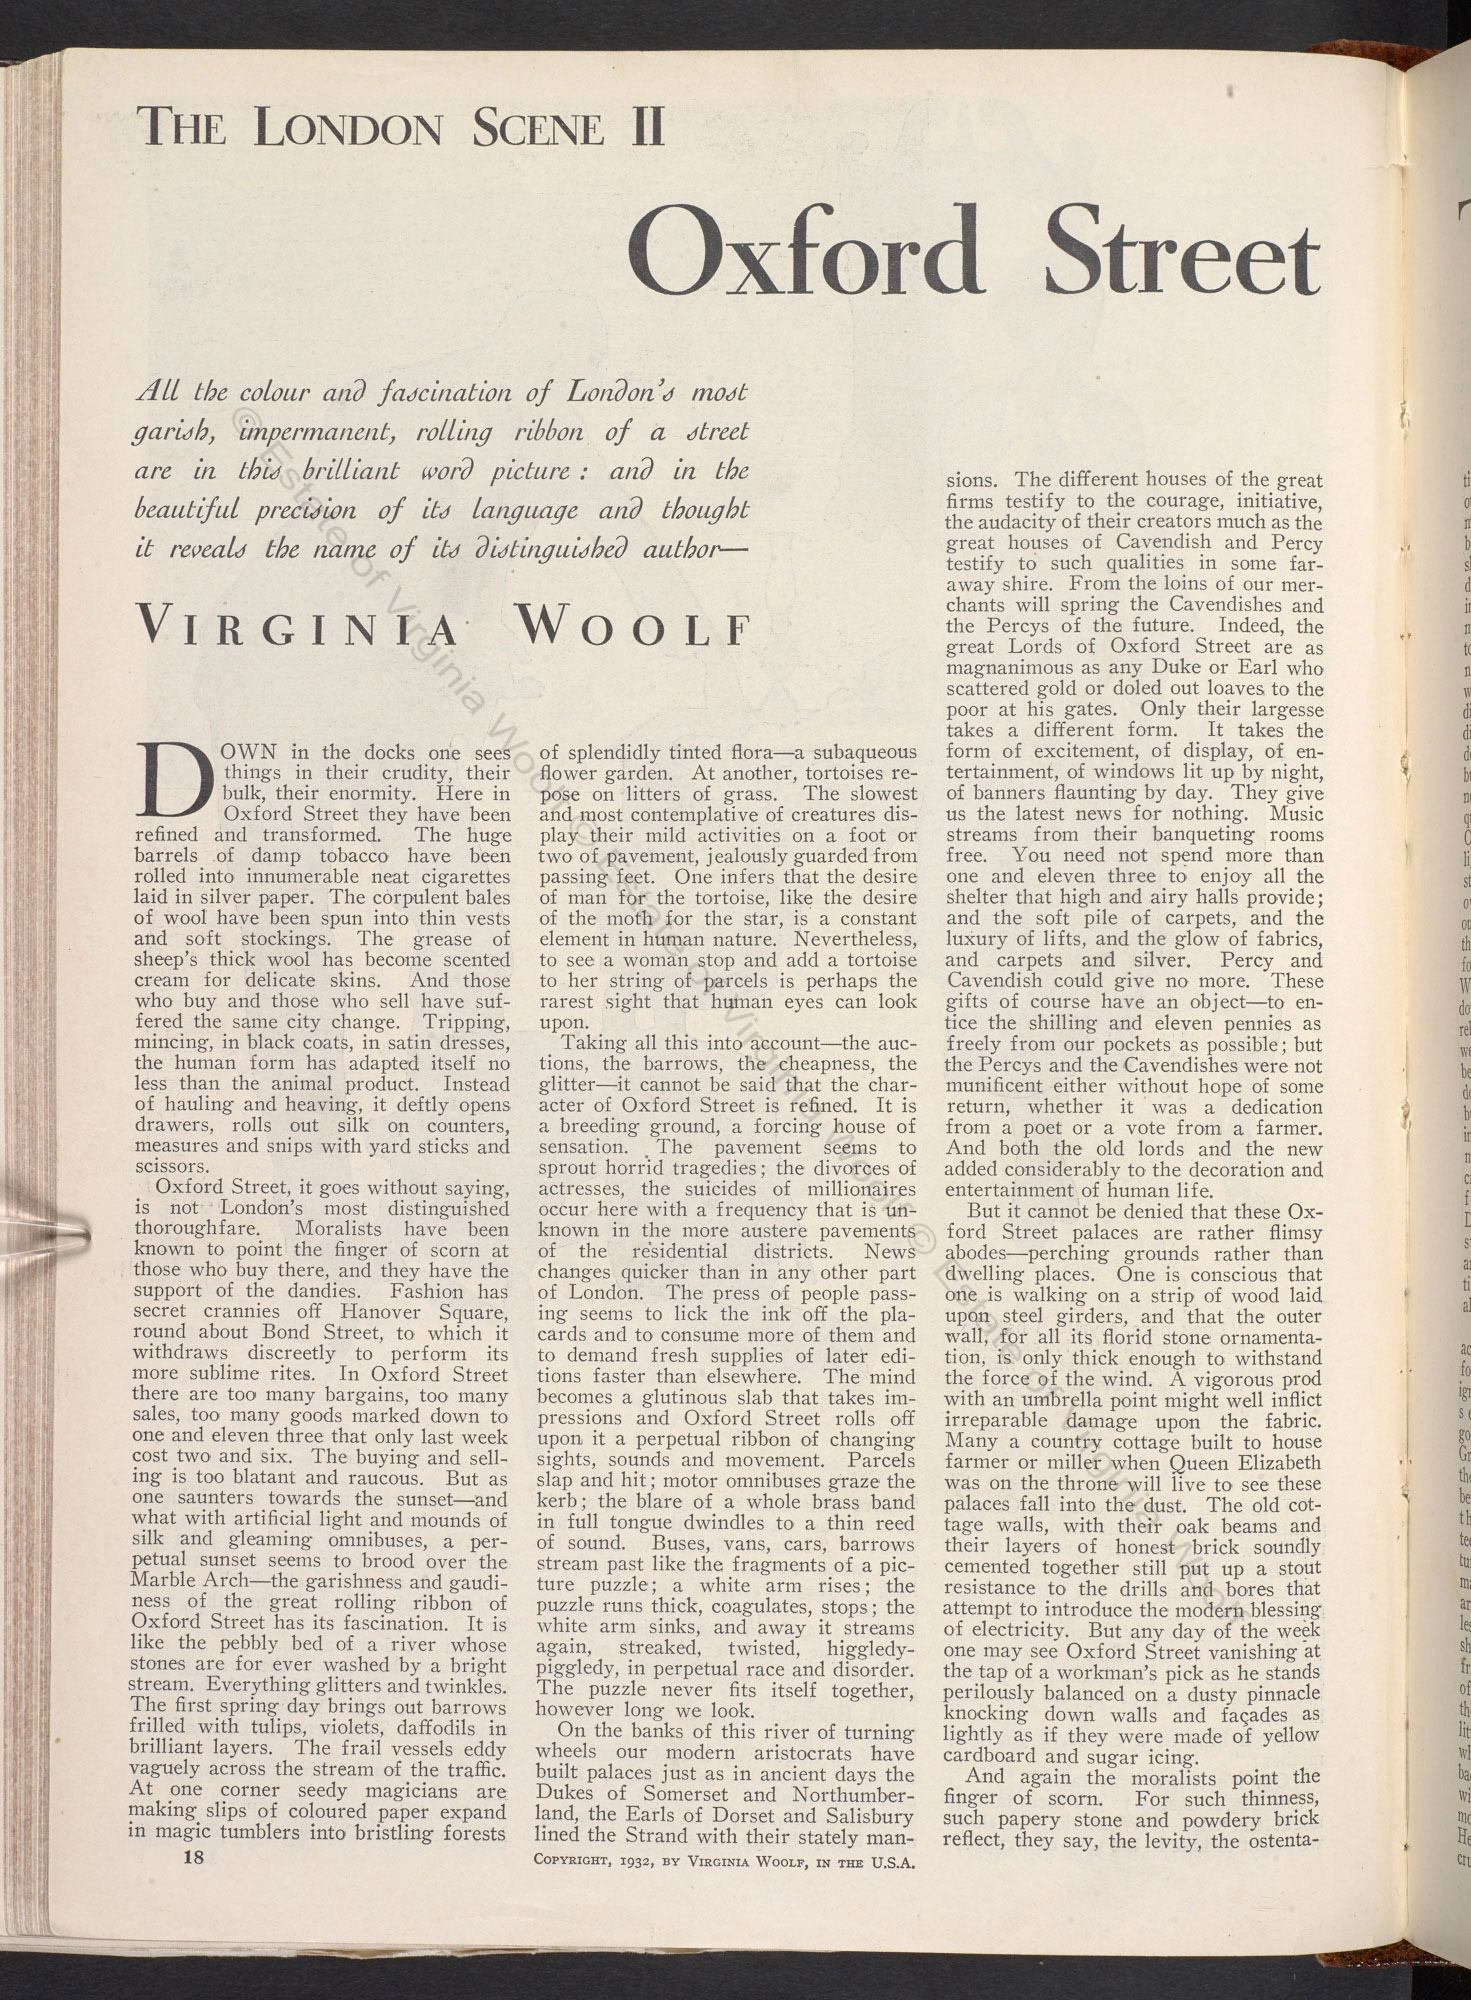 street haunting virginia woolf quotes